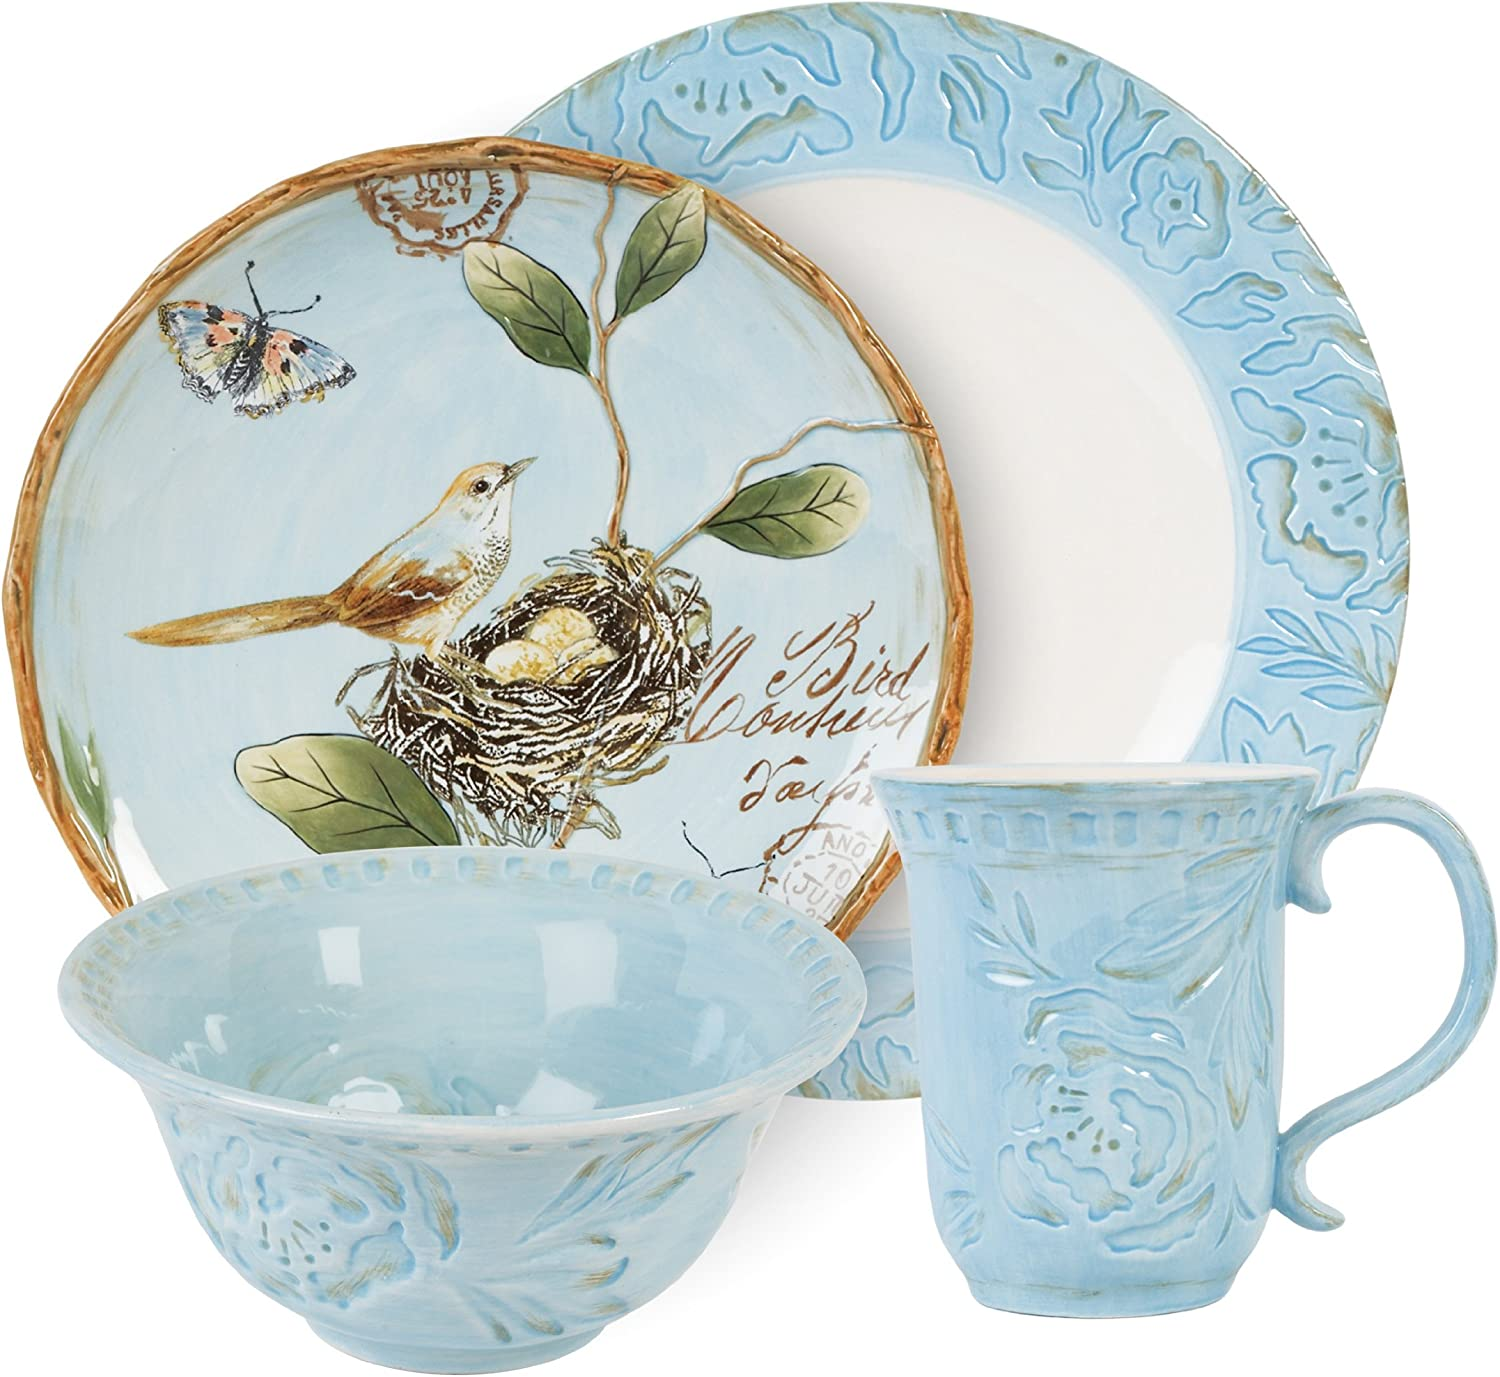 Toulouse Collection, 4-Piece Dinnerware Set, bluee